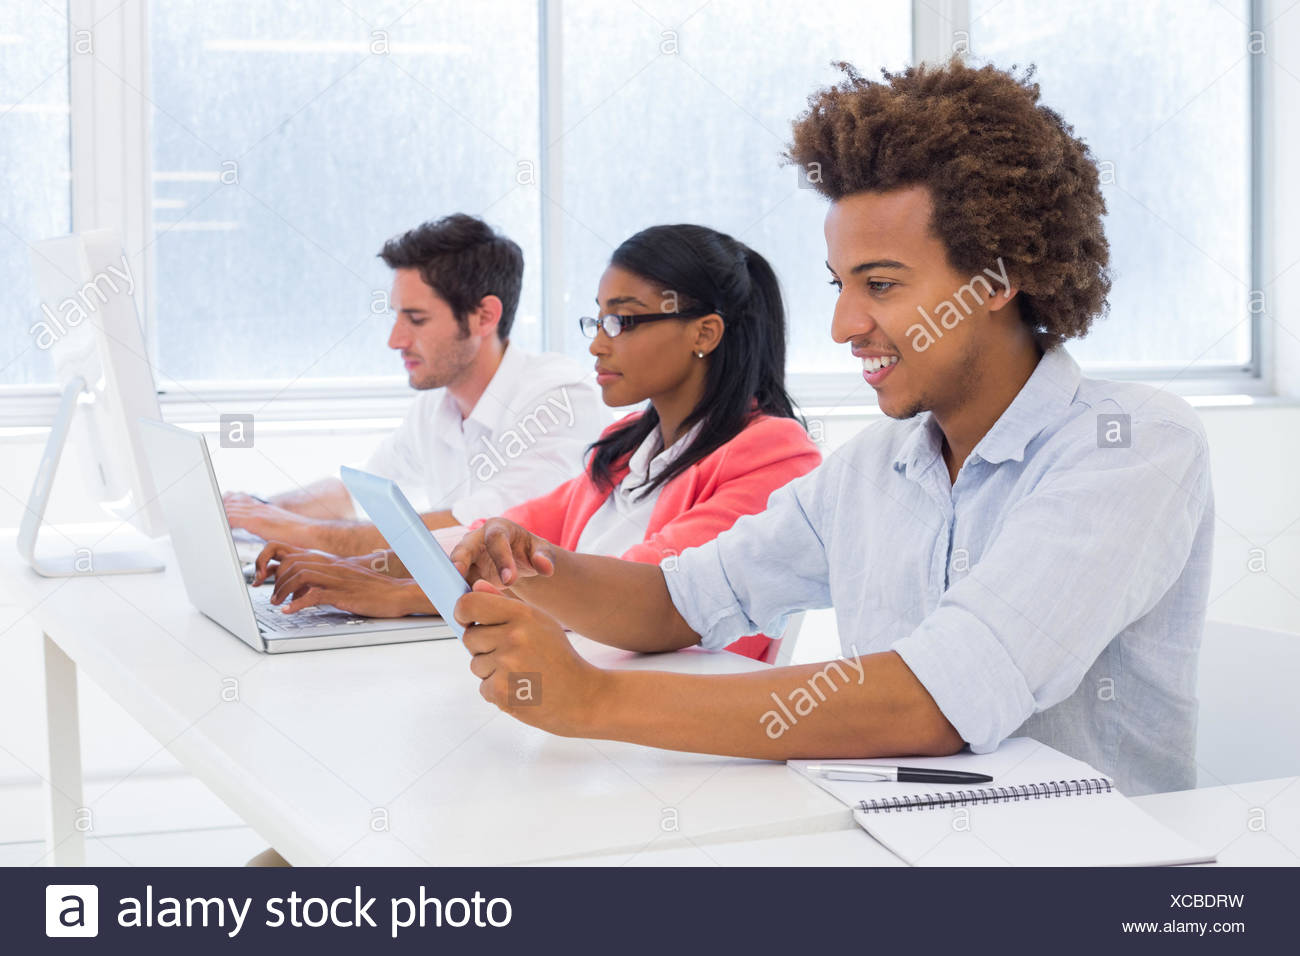 Business people hard at work - Stock Image